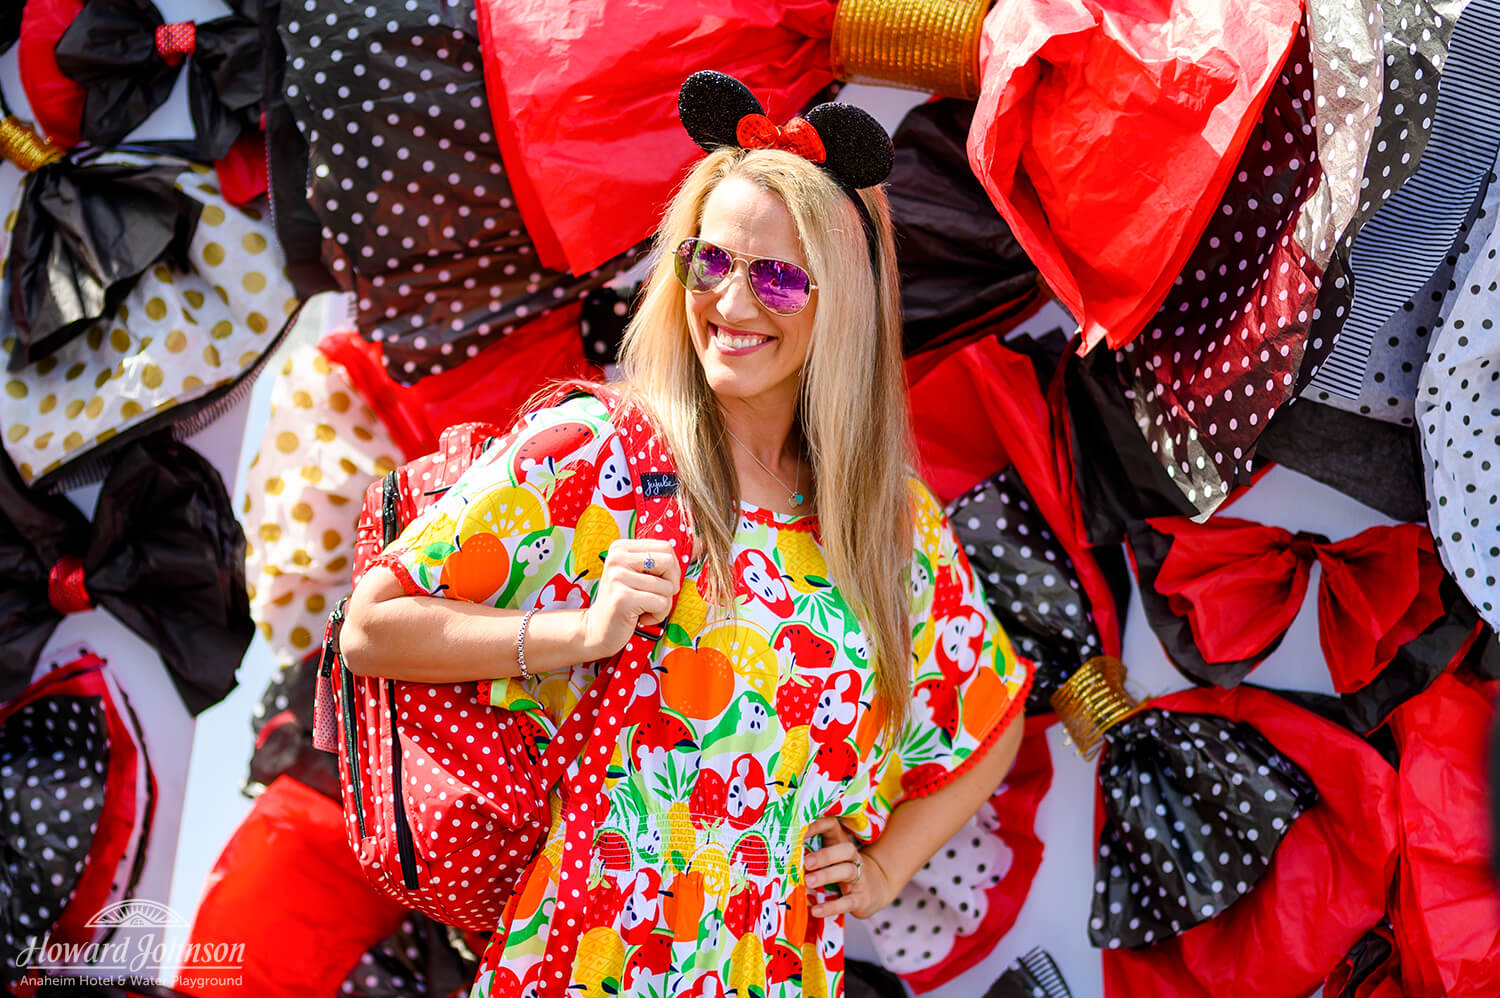 a woman poses for a picture while holding a polka dot backpack in front of a backdrop of polka dot bows